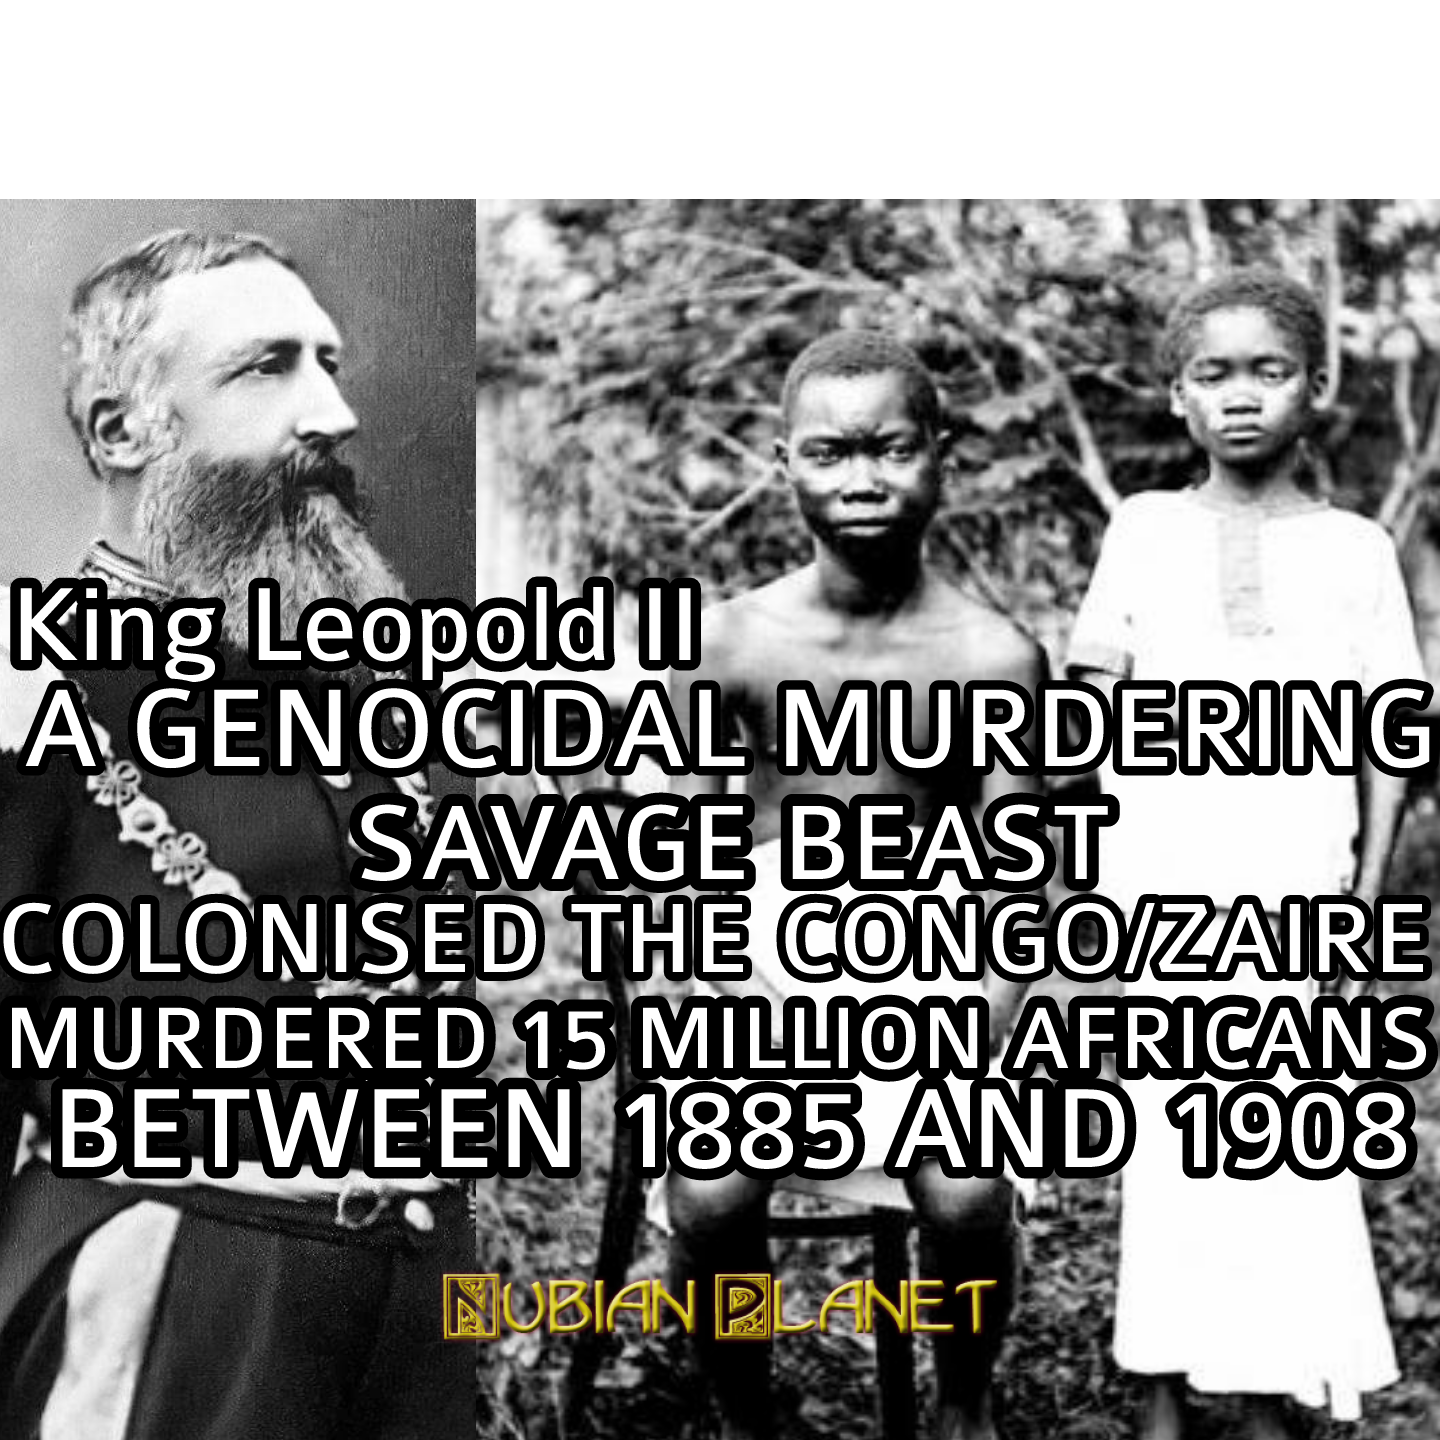 KING LEOPOLD II HEINOUS AND BARBARIC GENOCIDE OF THE PEOPLE OF THE CONGO -  Nubian Planet